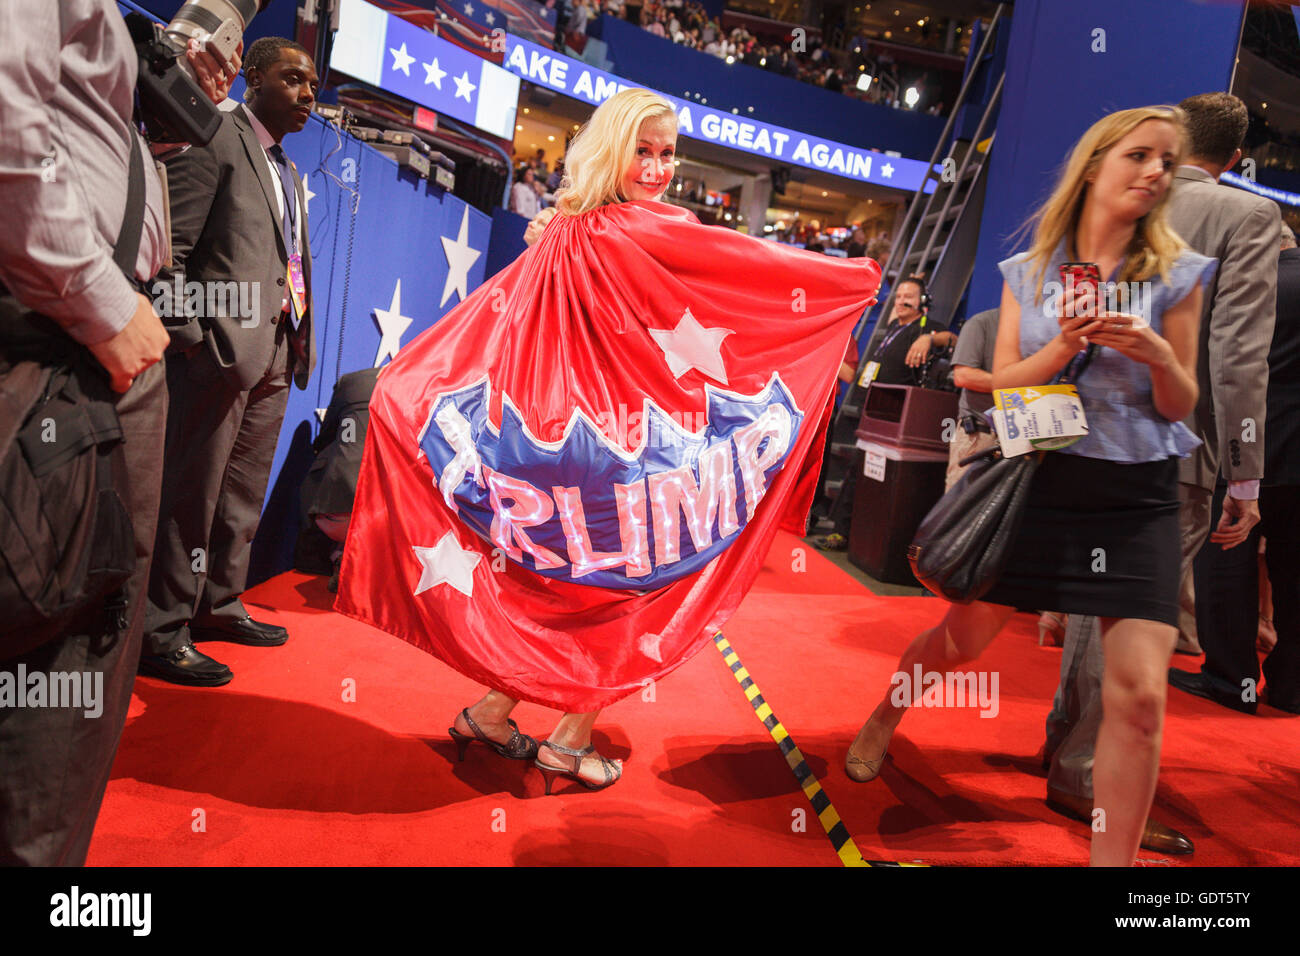 Cleveland, Ohio, USA; July 21, 2016: A woman from Minneapolis, Minnesota, models a Trump cape at the Republican - Stock Image